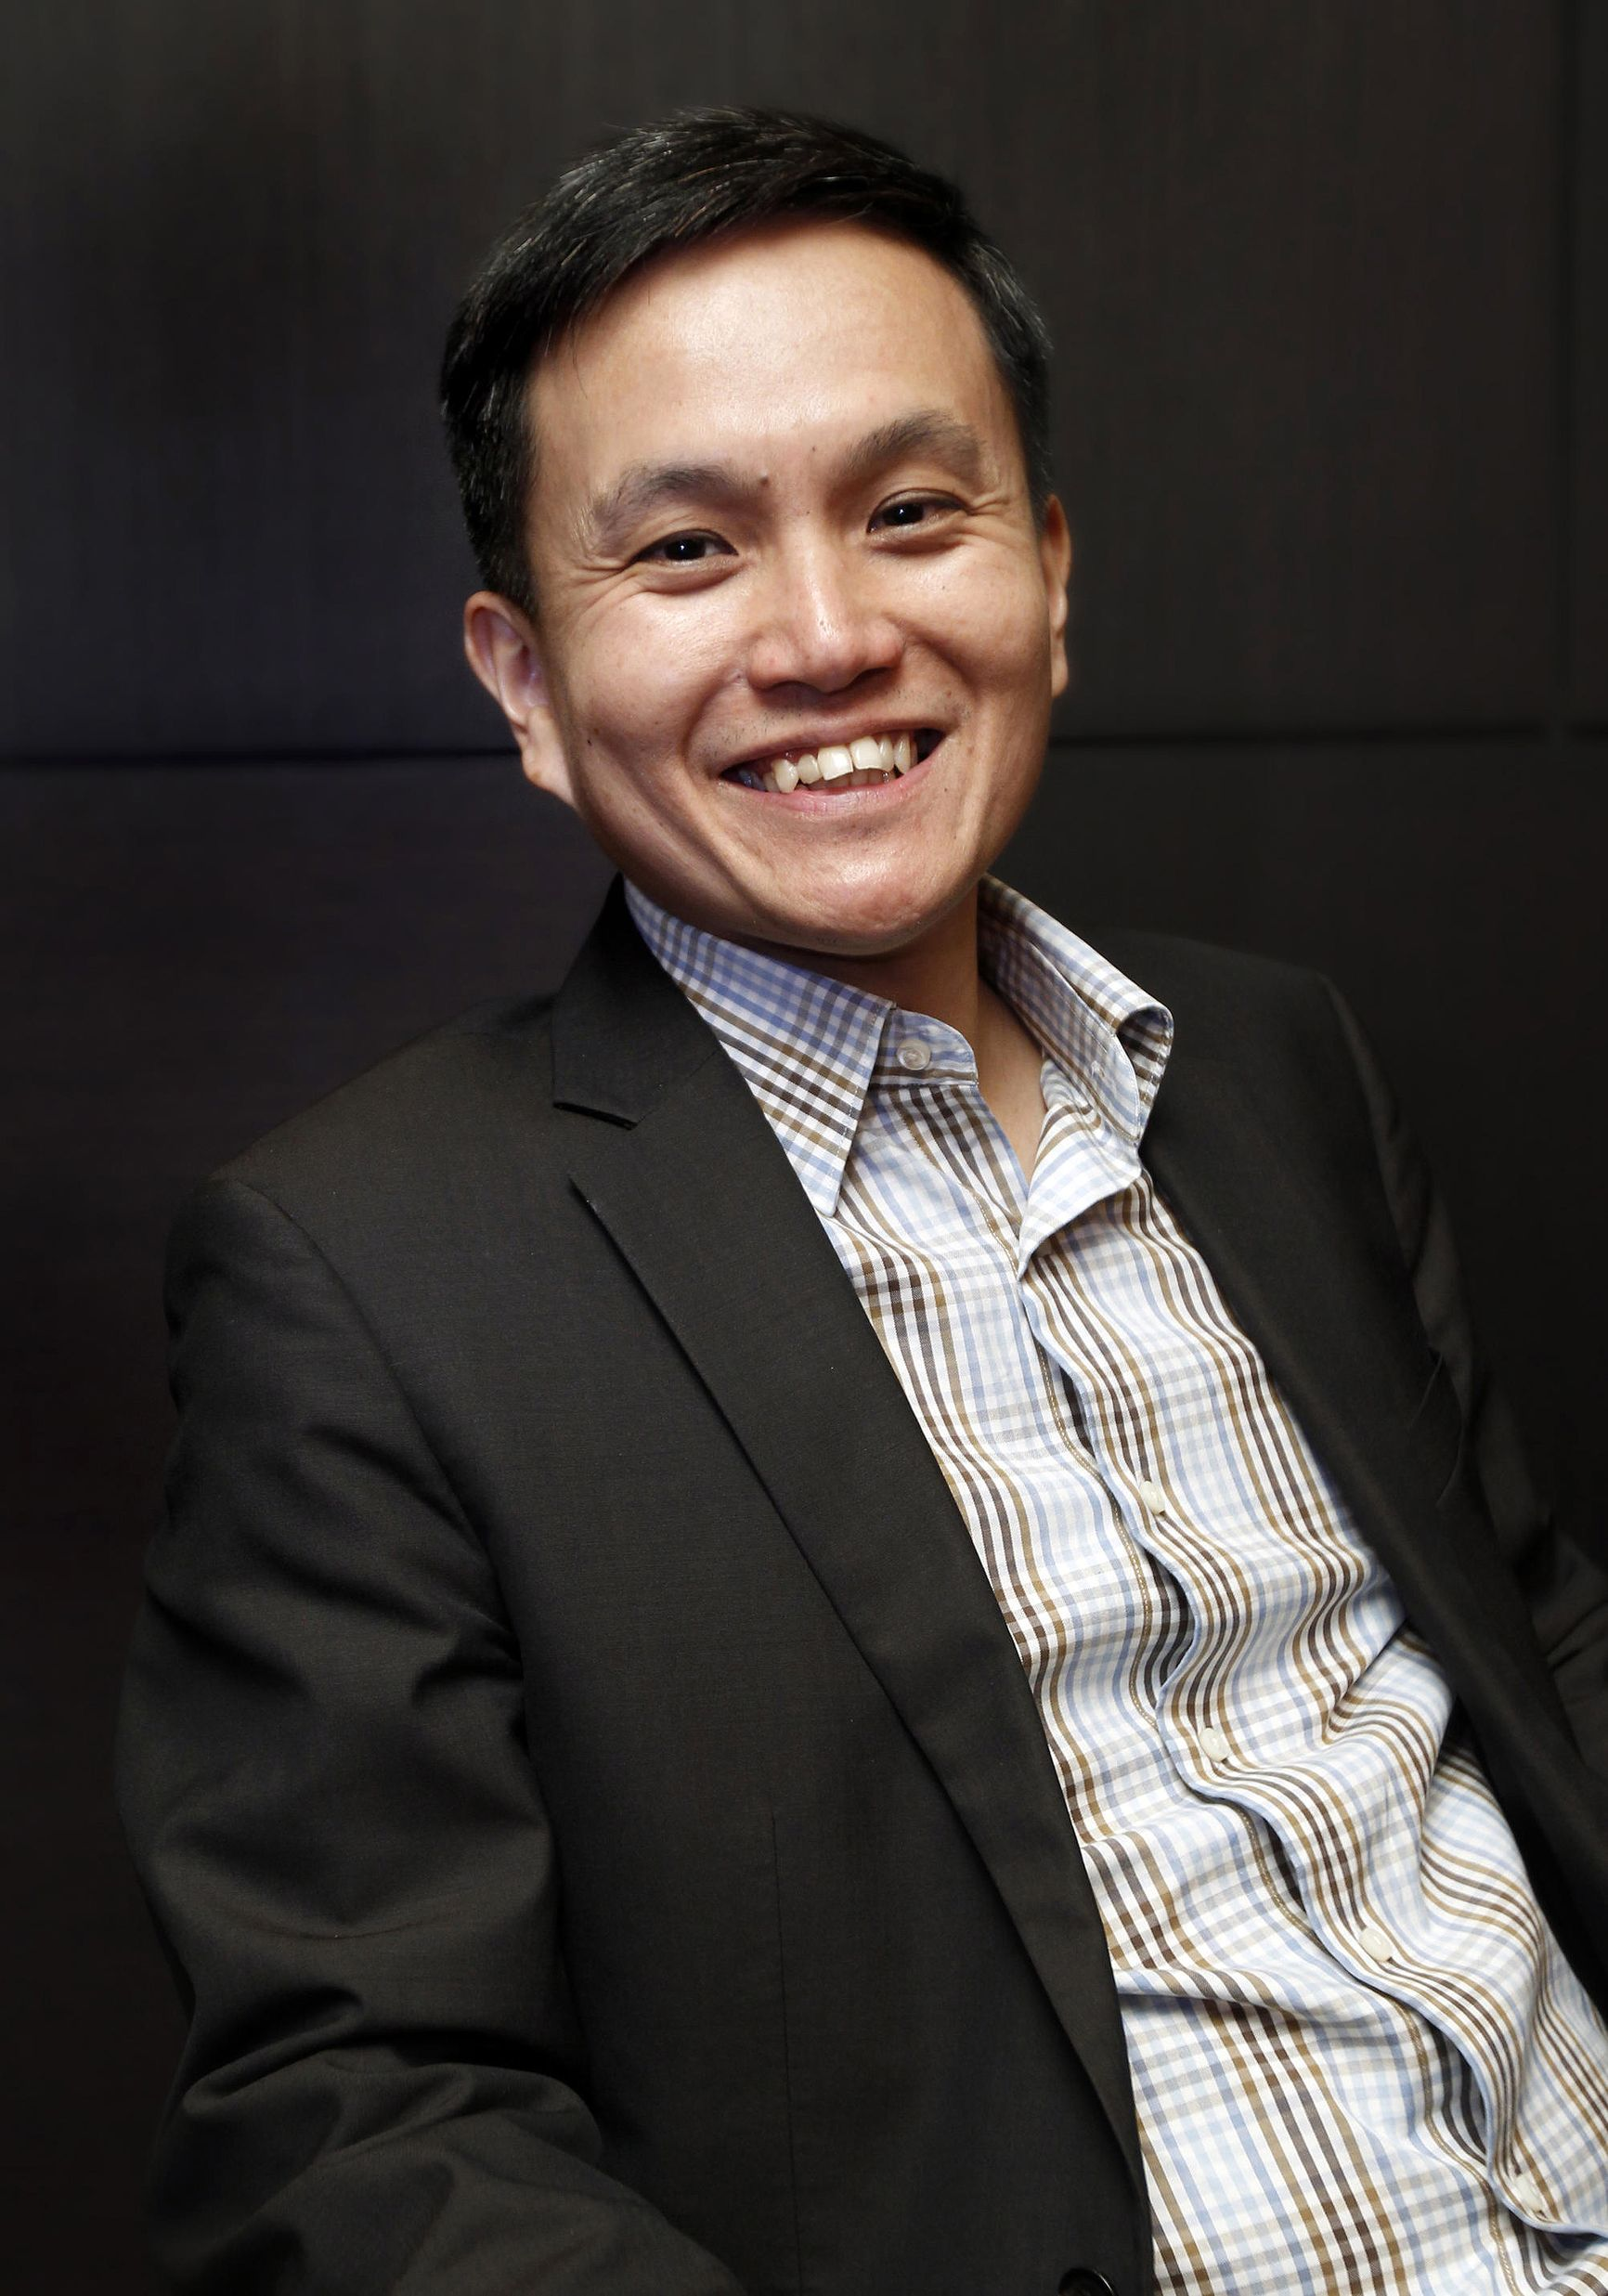 Trafigura appoints Tan Chin Hwee as Asia-Pacific CEO, Energy